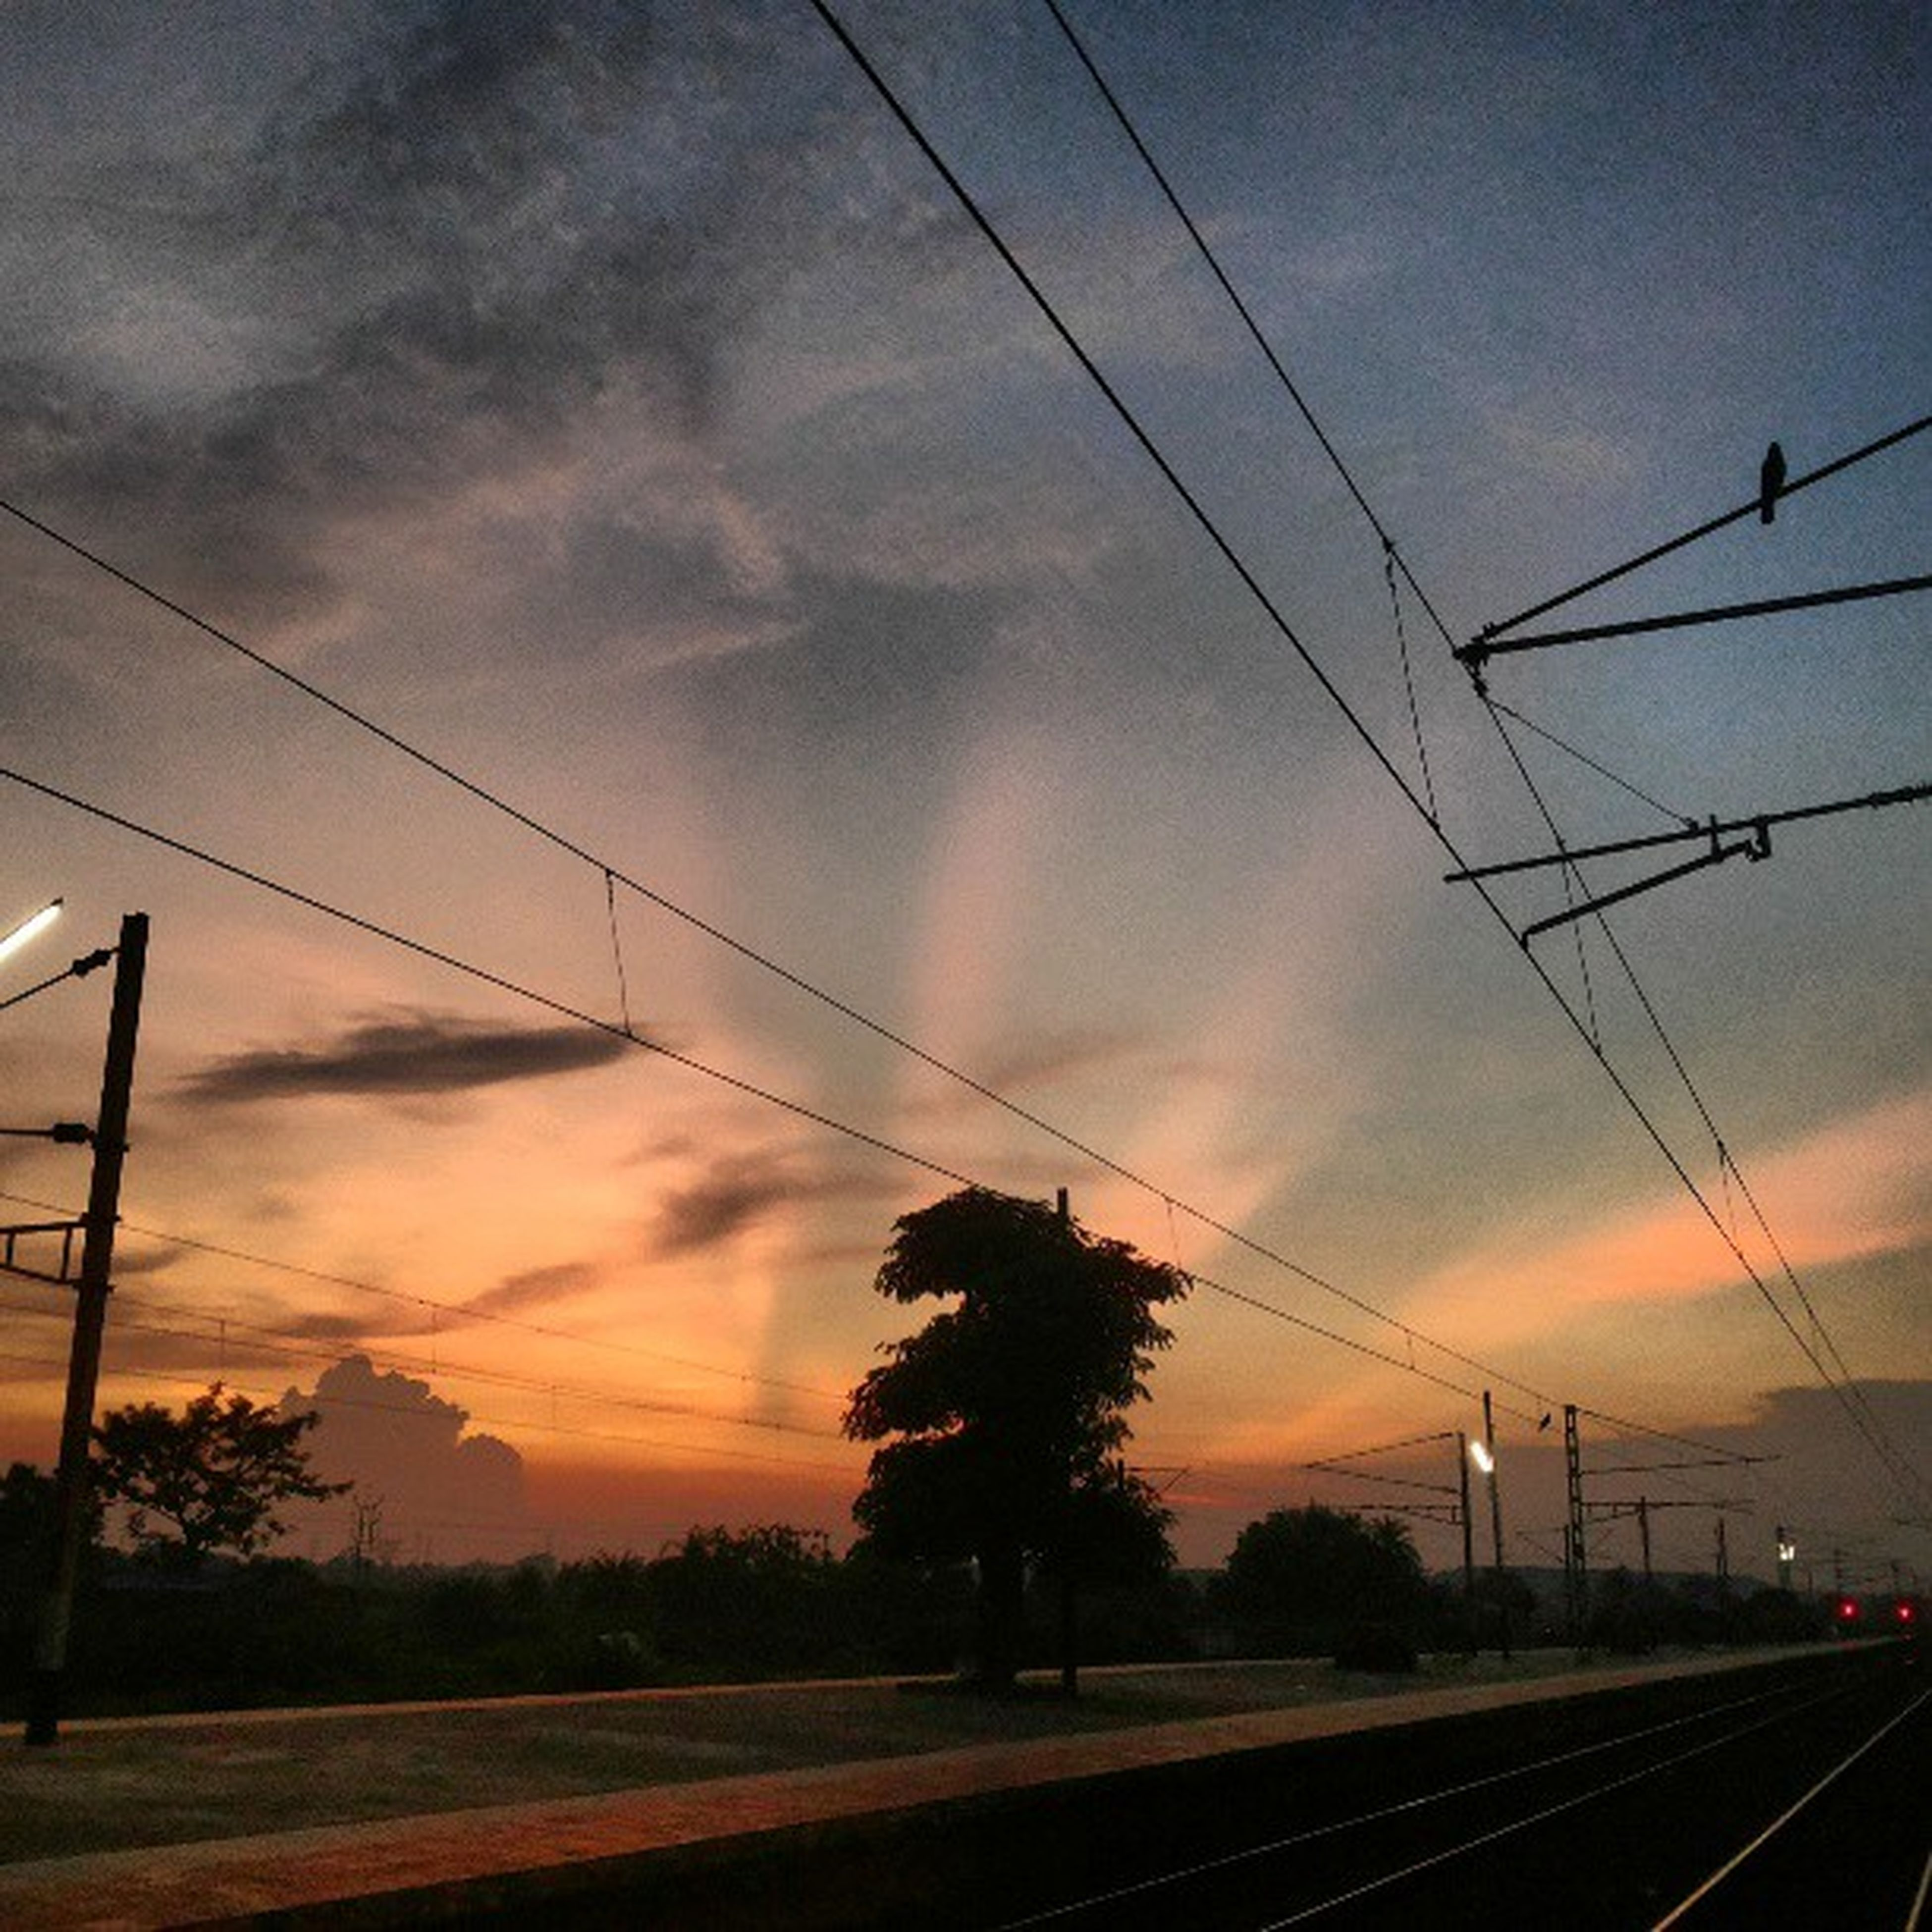 power line, electricity pylon, sunset, sky, power supply, cable, electricity, connection, cloud - sky, power cable, fuel and power generation, transportation, silhouette, railroad track, orange color, cloud, cloudy, landscape, scenics, technology